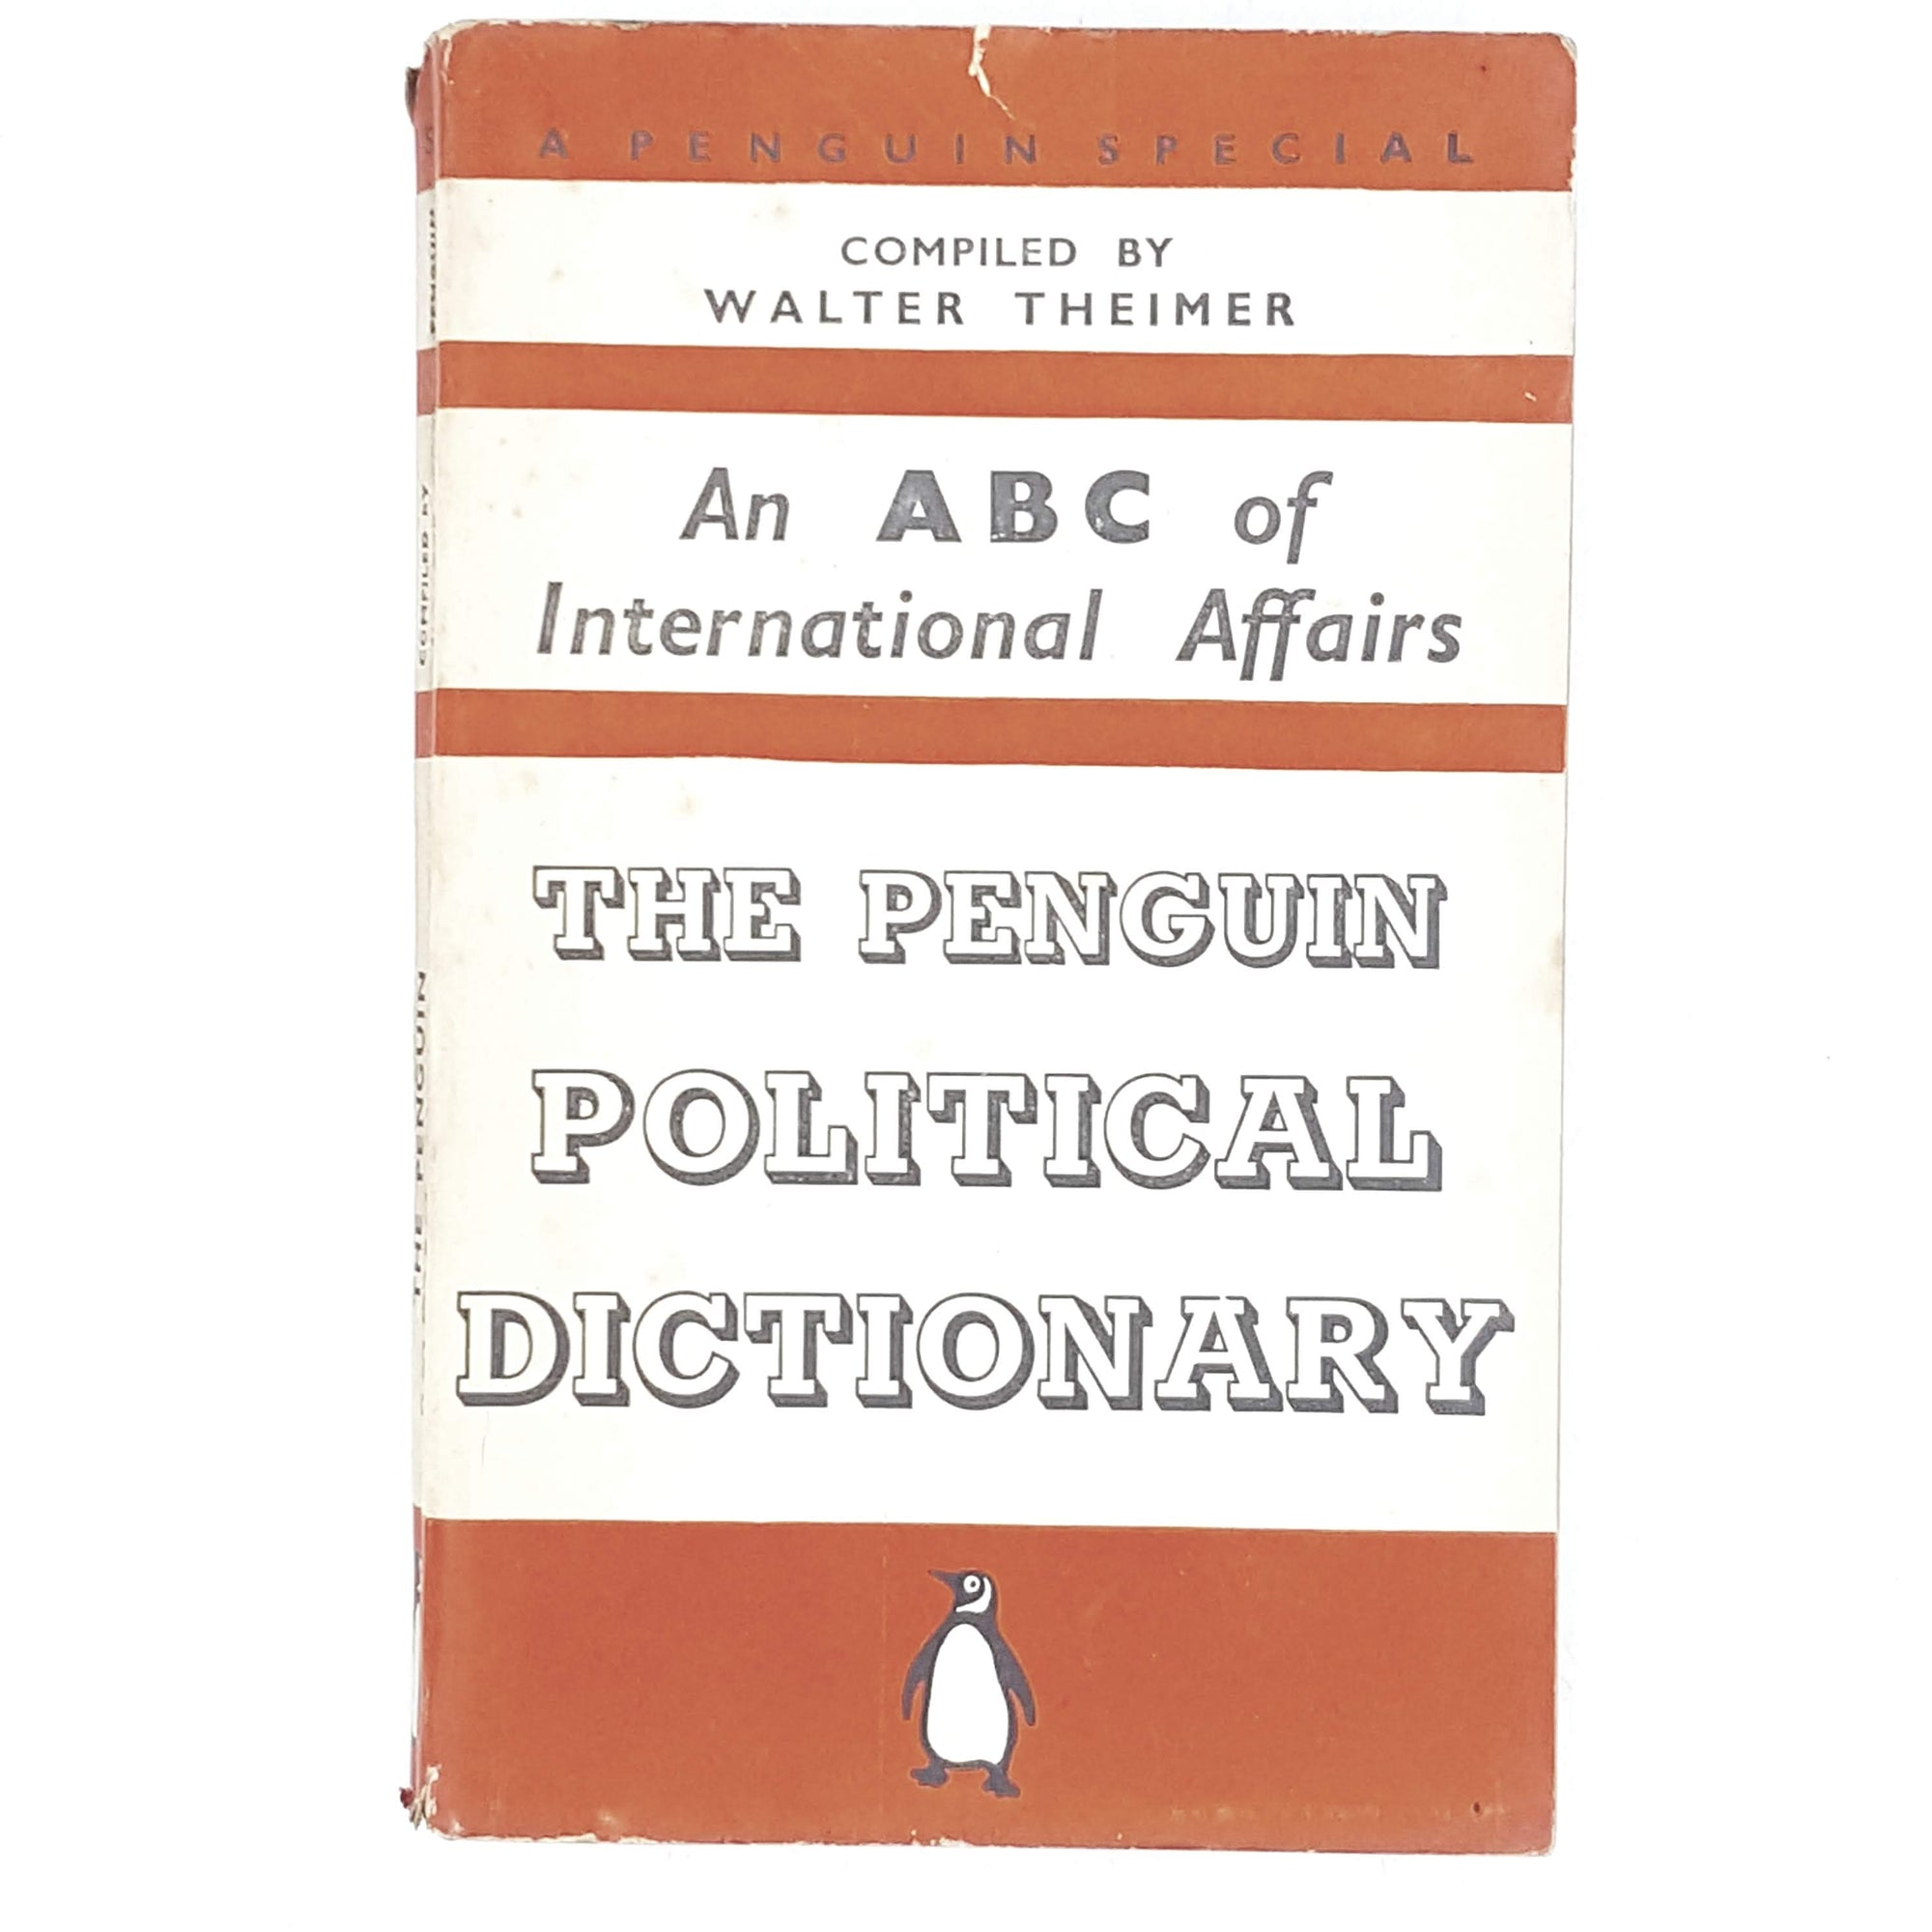 First Edition Penguin An ABC of International Affairs: The Penguin Political Dictionary 1939